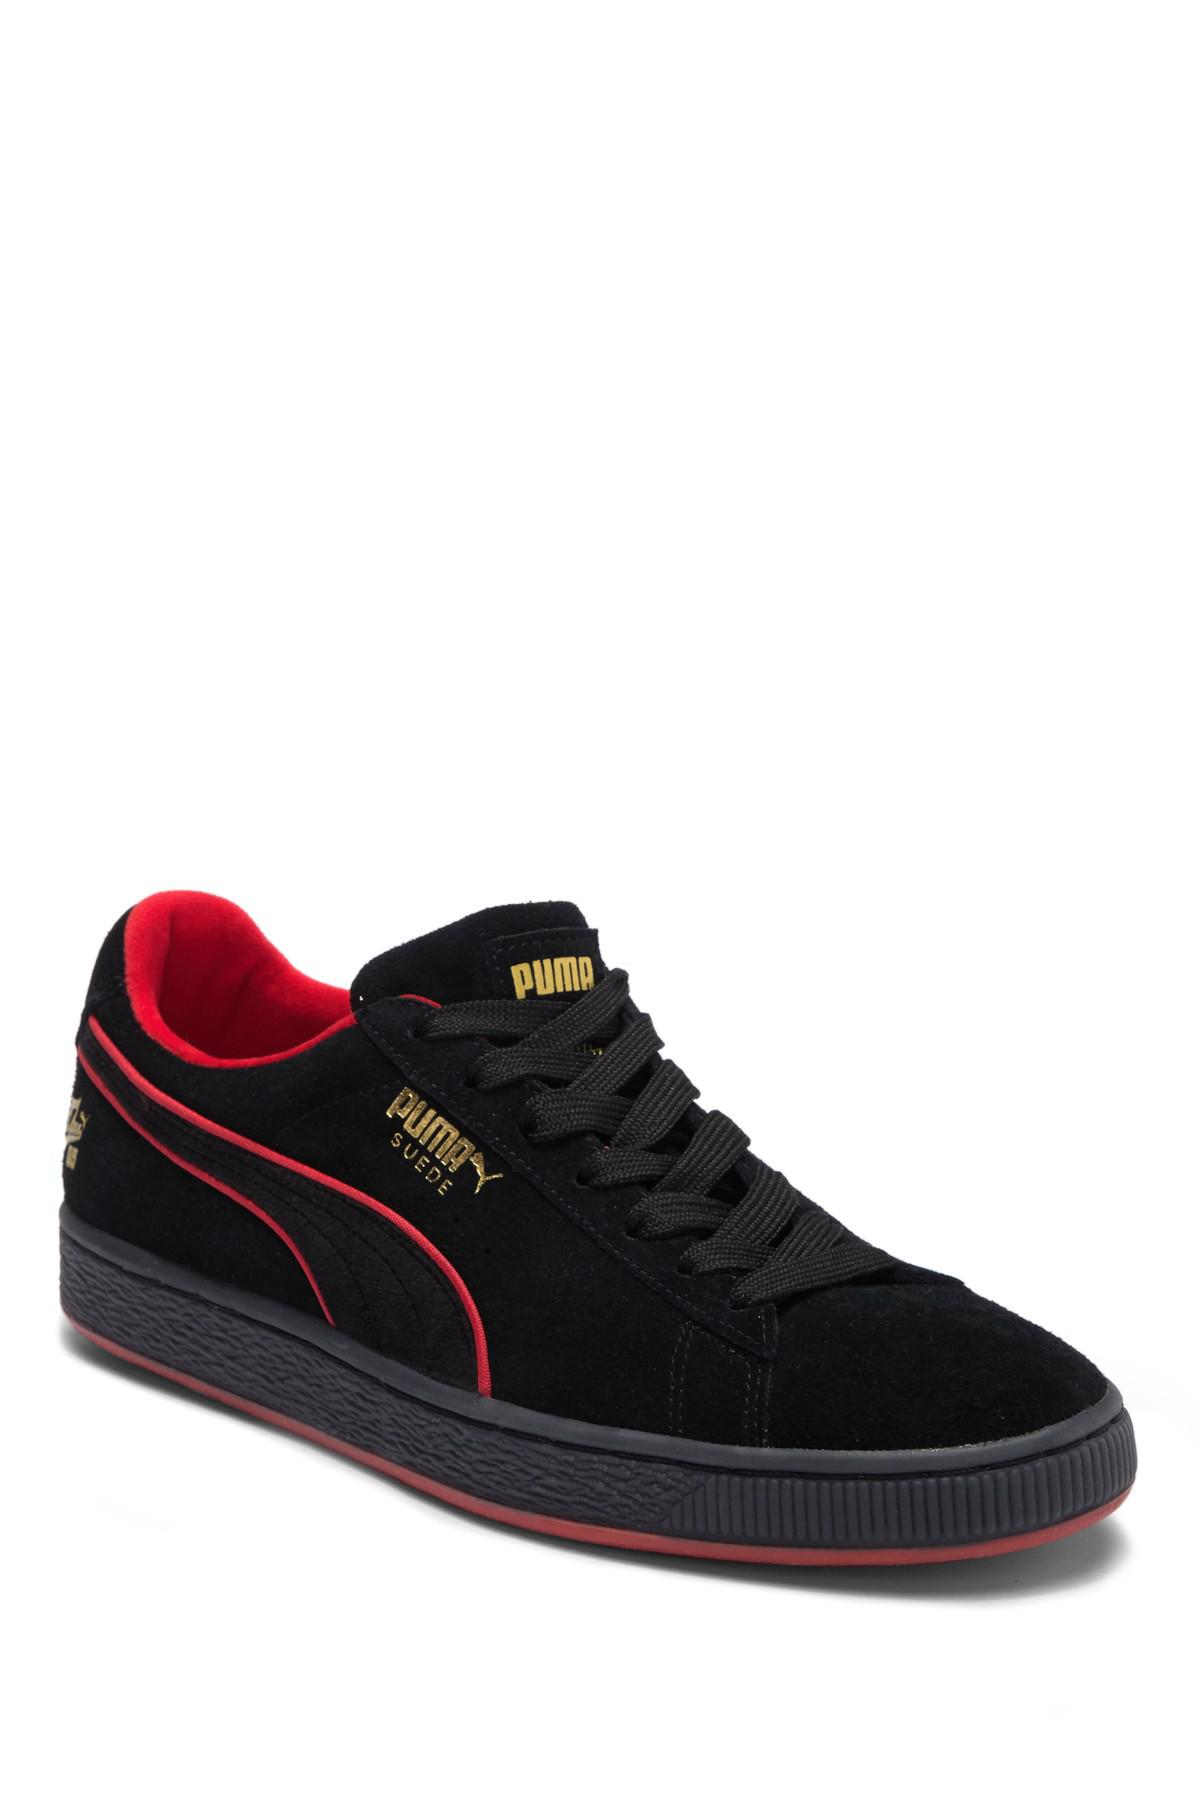 3508ff01598659 Lyst - PUMA Classic X Fubu Suede Sneaker in Black for Men